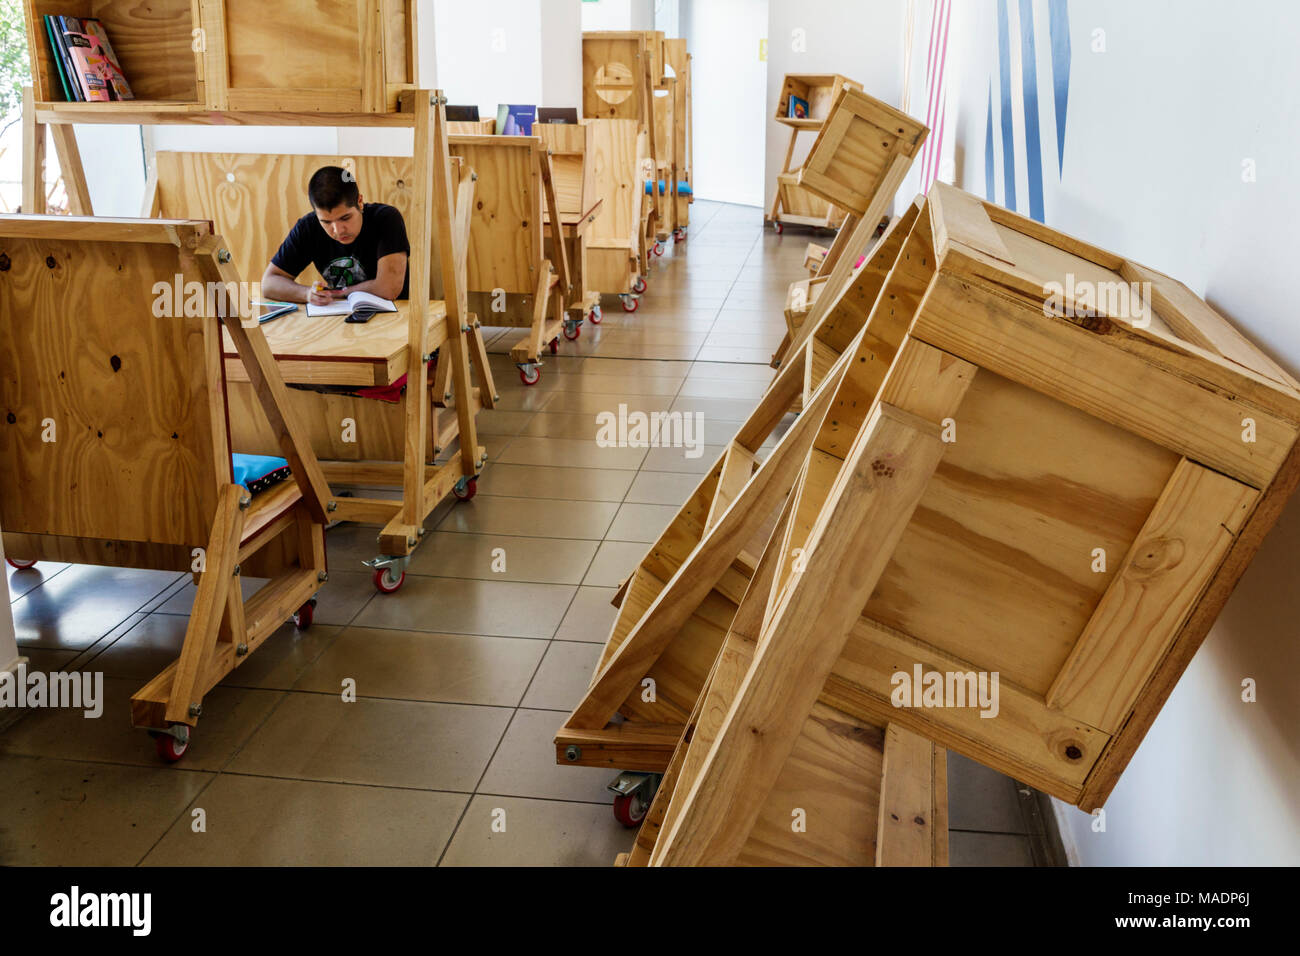 Buenos Aires Argentina Centro Cultural Recoleta Center Art Gallery Interior  Library Crate Furniture Rustic Desk Boy Teen Reading Hispanic Argentinean  ...